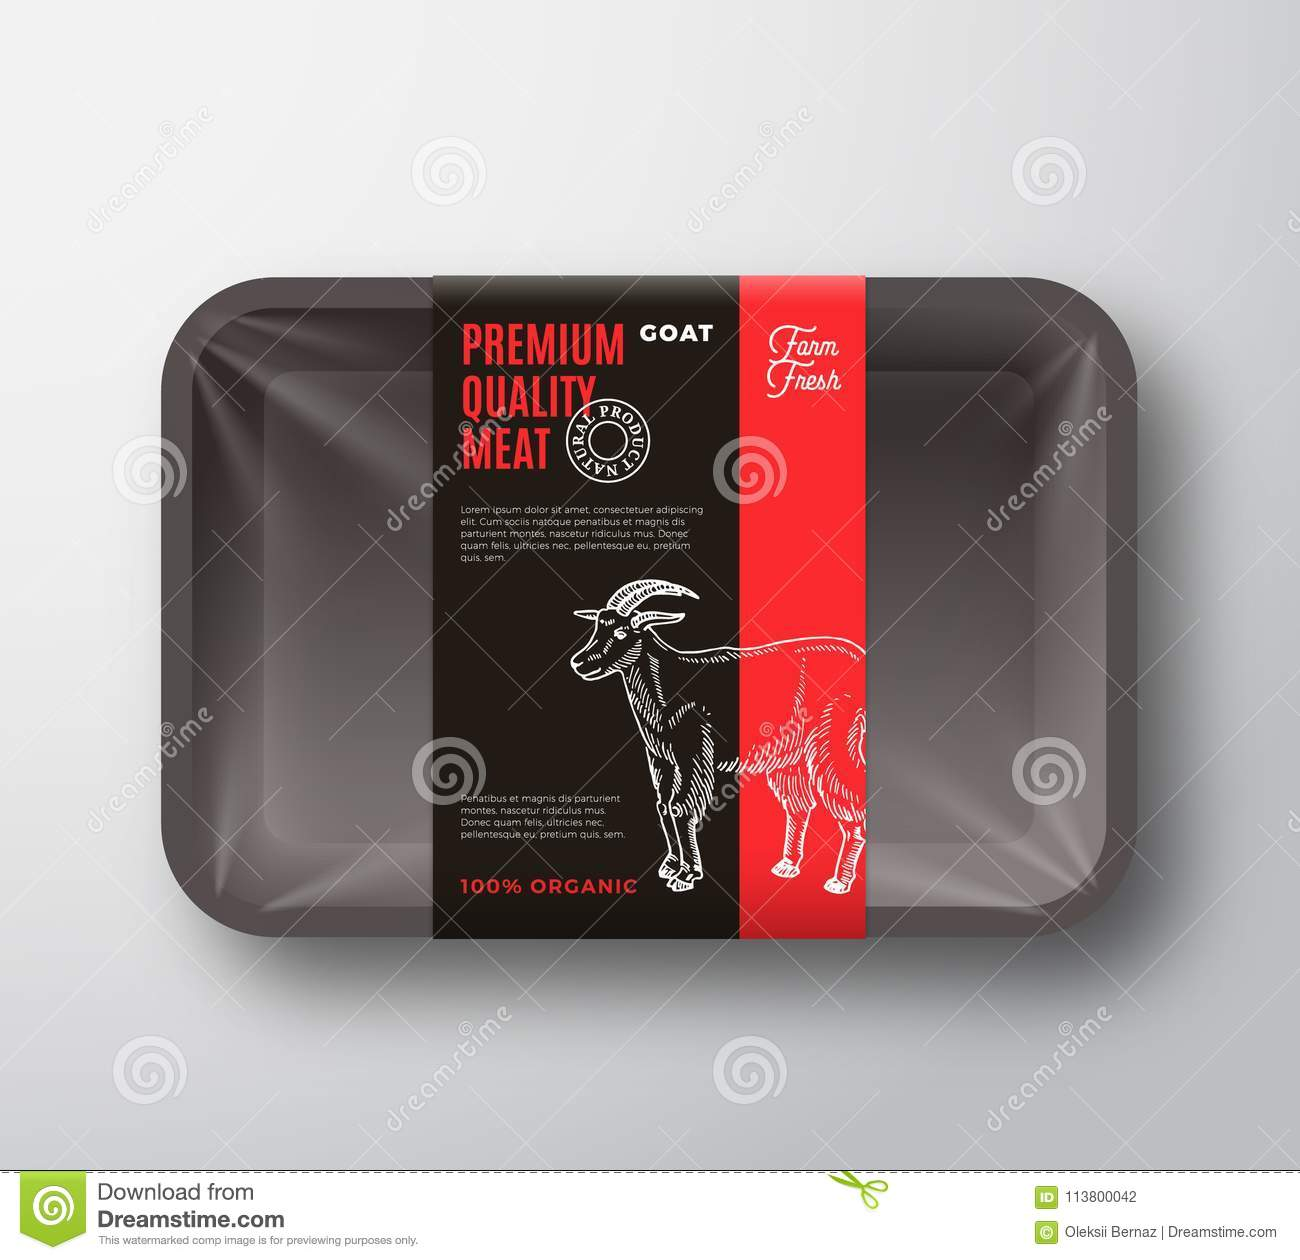 Premium Quality Goat Meat Packaging Design Layout With Label Stripe